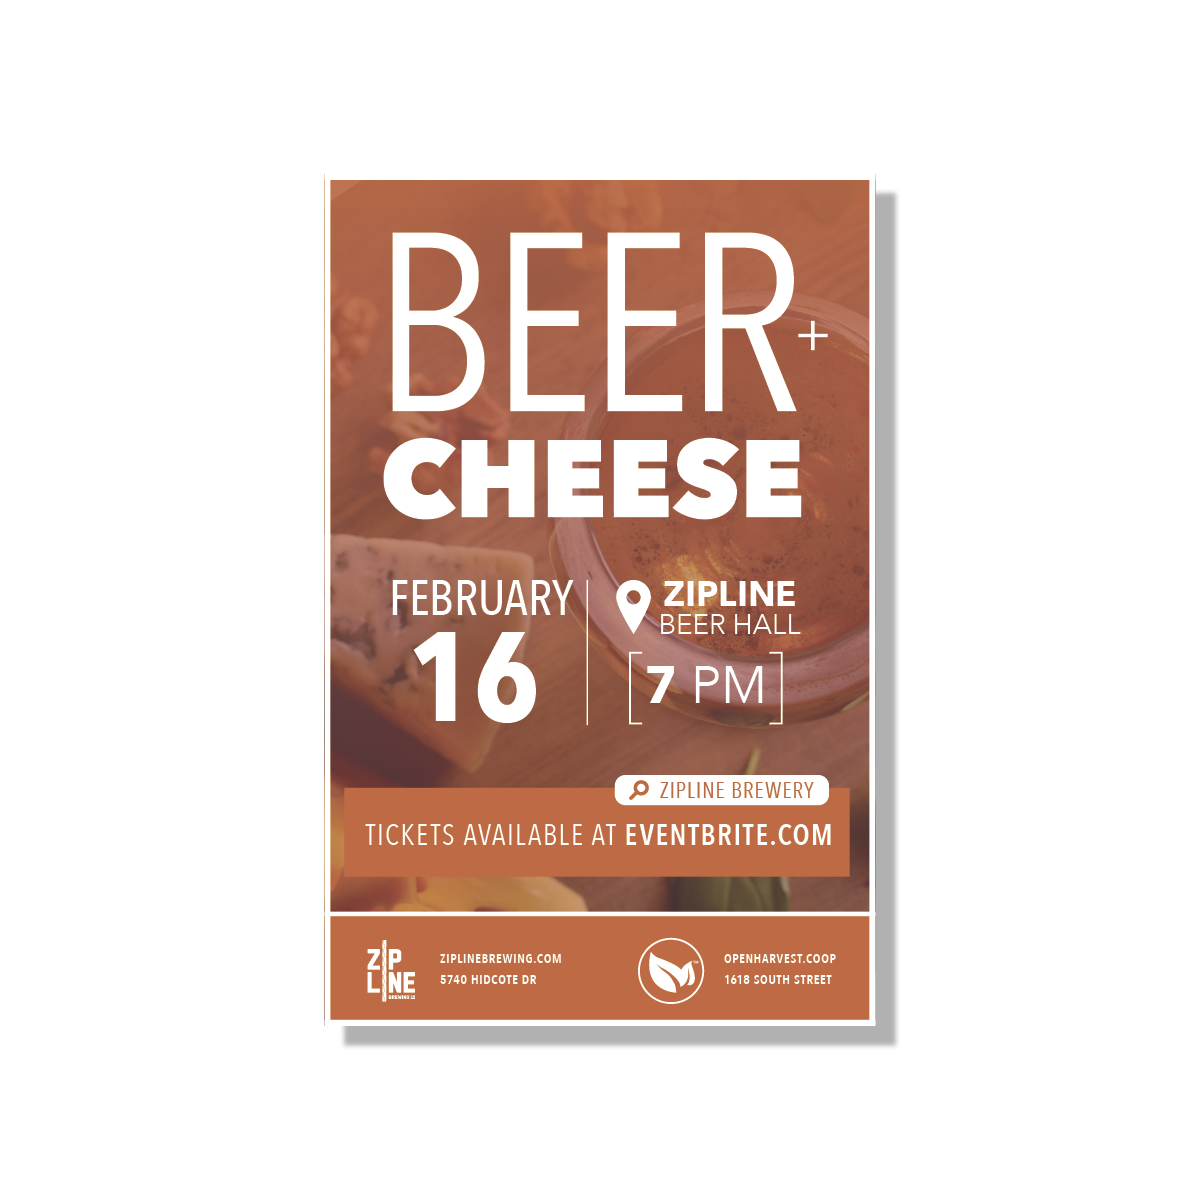 beer+cheese